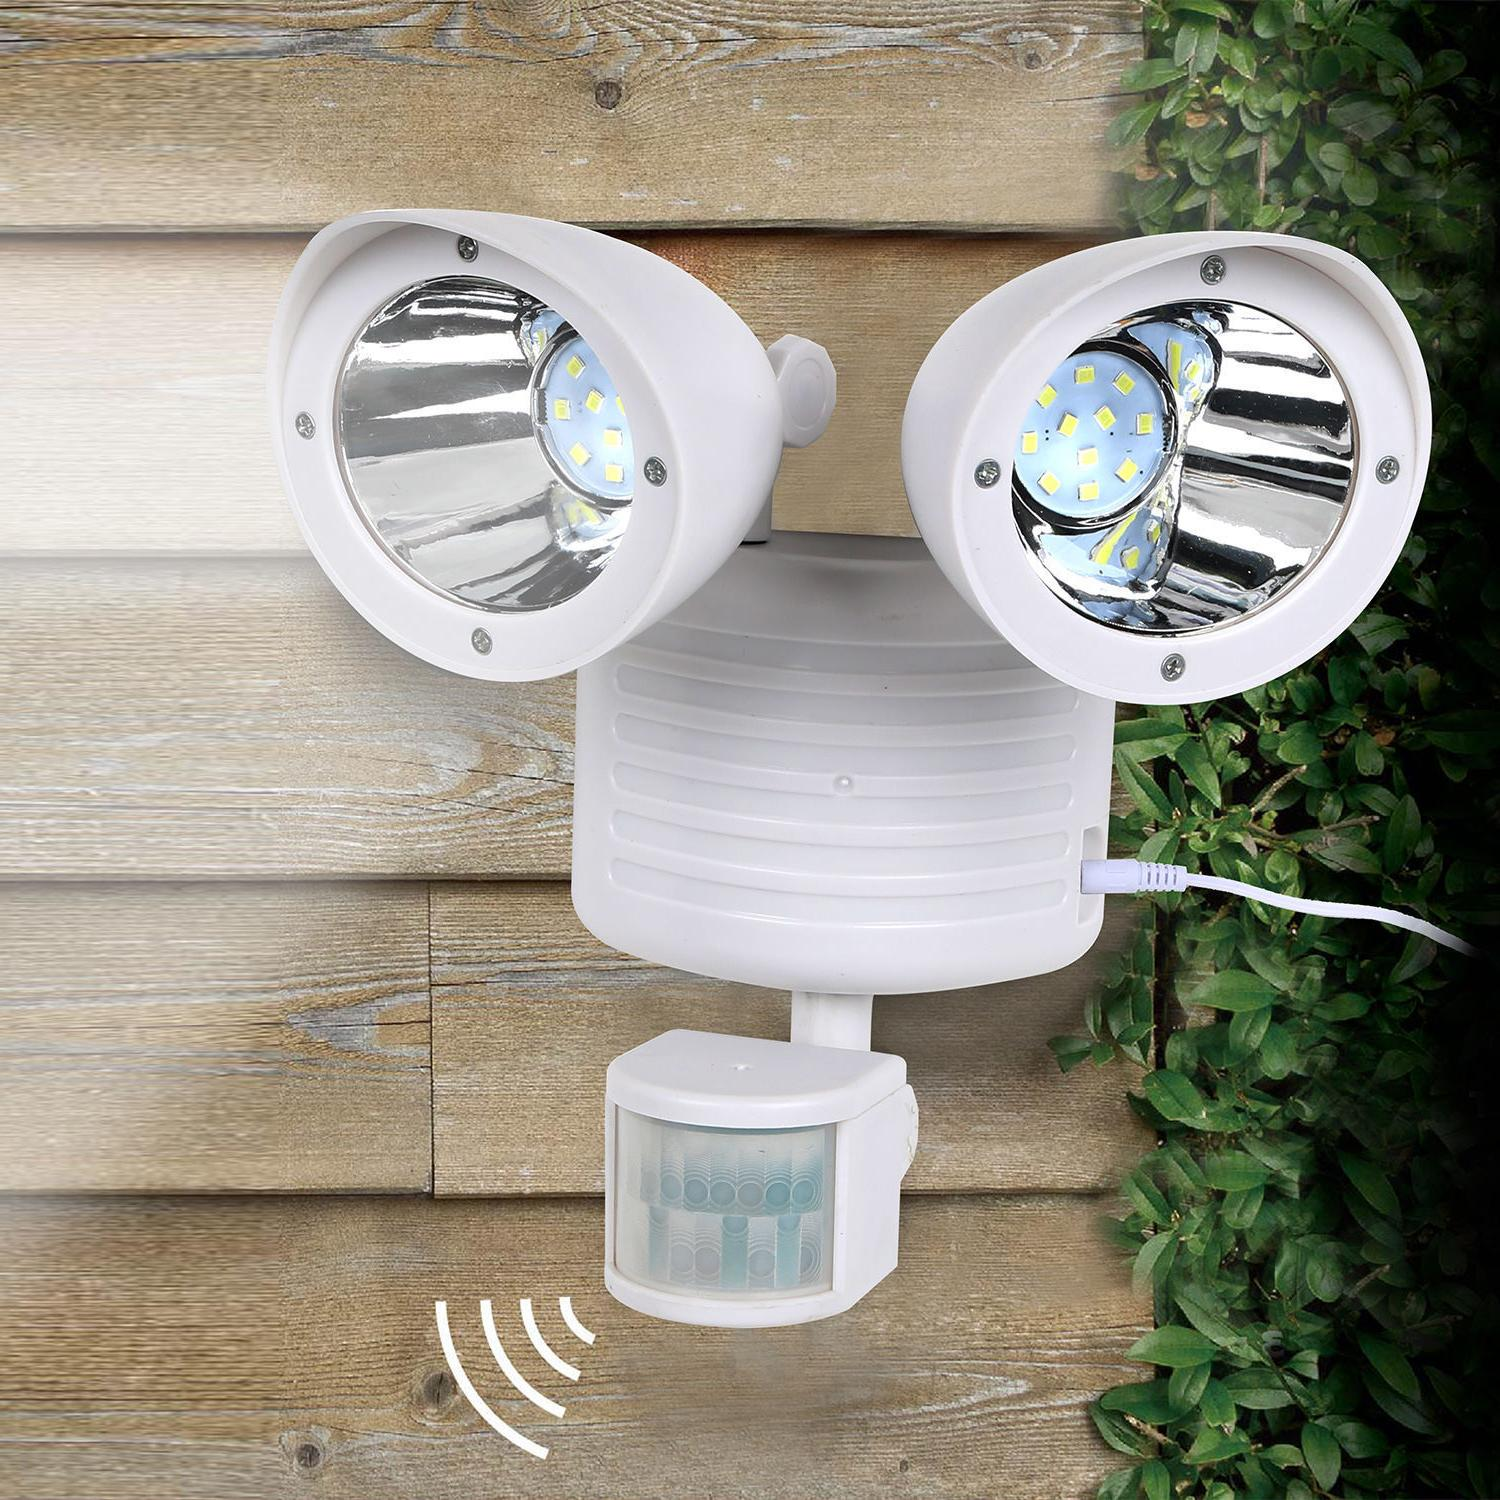 22 Dual Security Detector Solar Motion Sensor Outdoor Floodlight